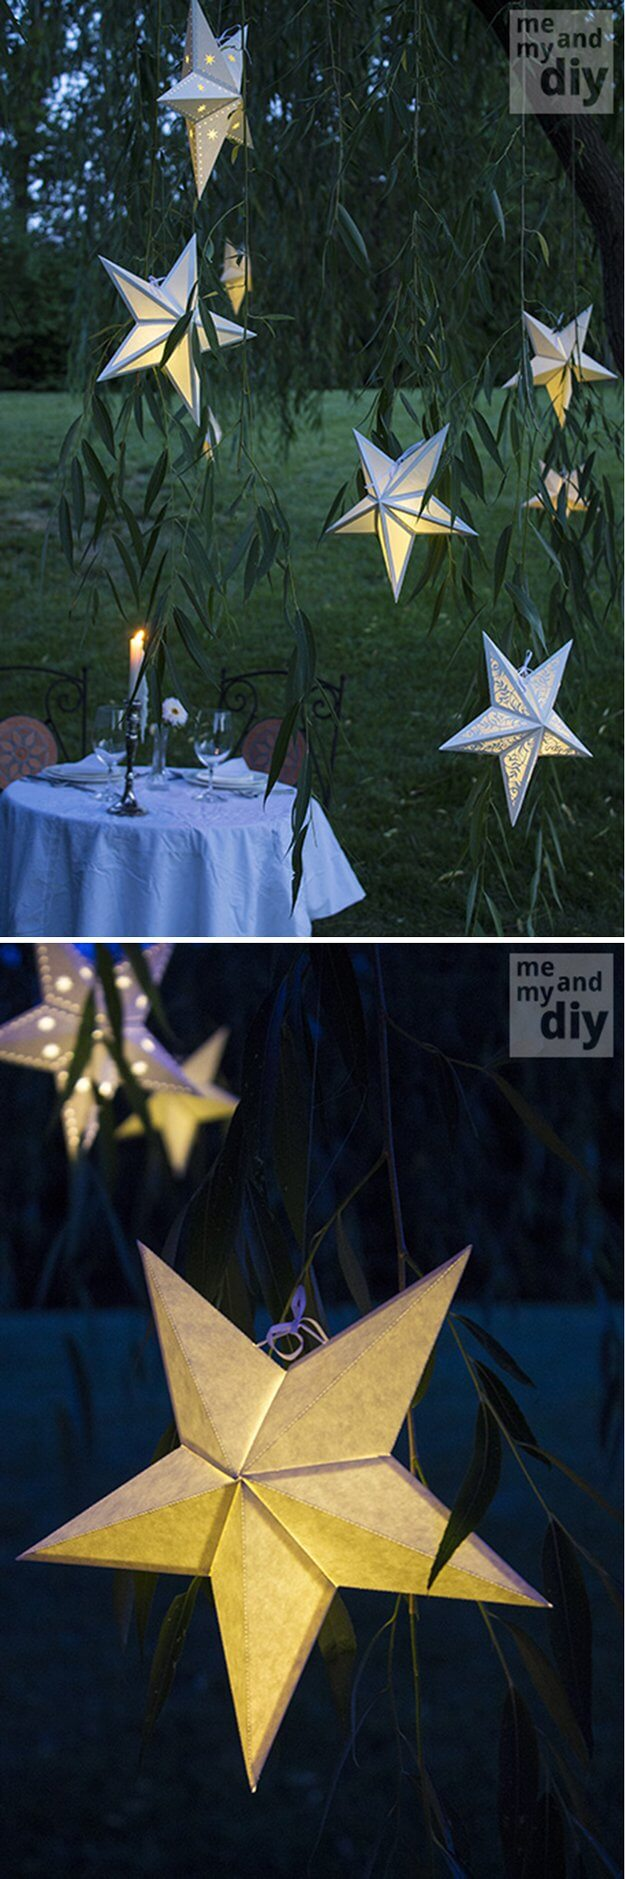 Homemade Star Shaped Paper Lanterns